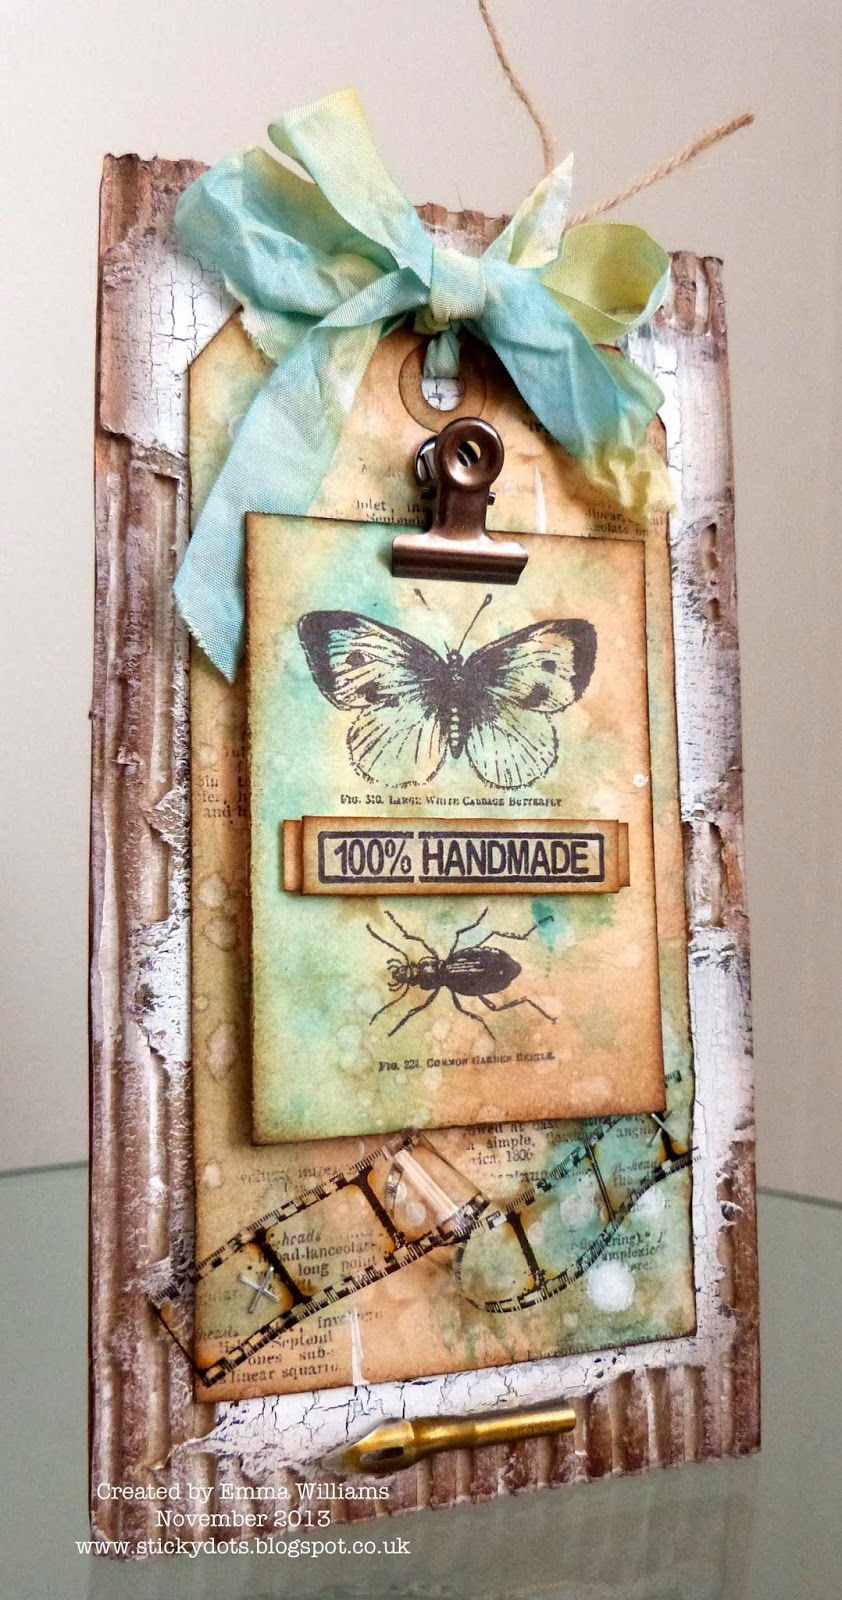 100 Handmade Gifts Under Five Dollars: The Artistic Stamper Creative Team Blog: 100% Handmade By Emma